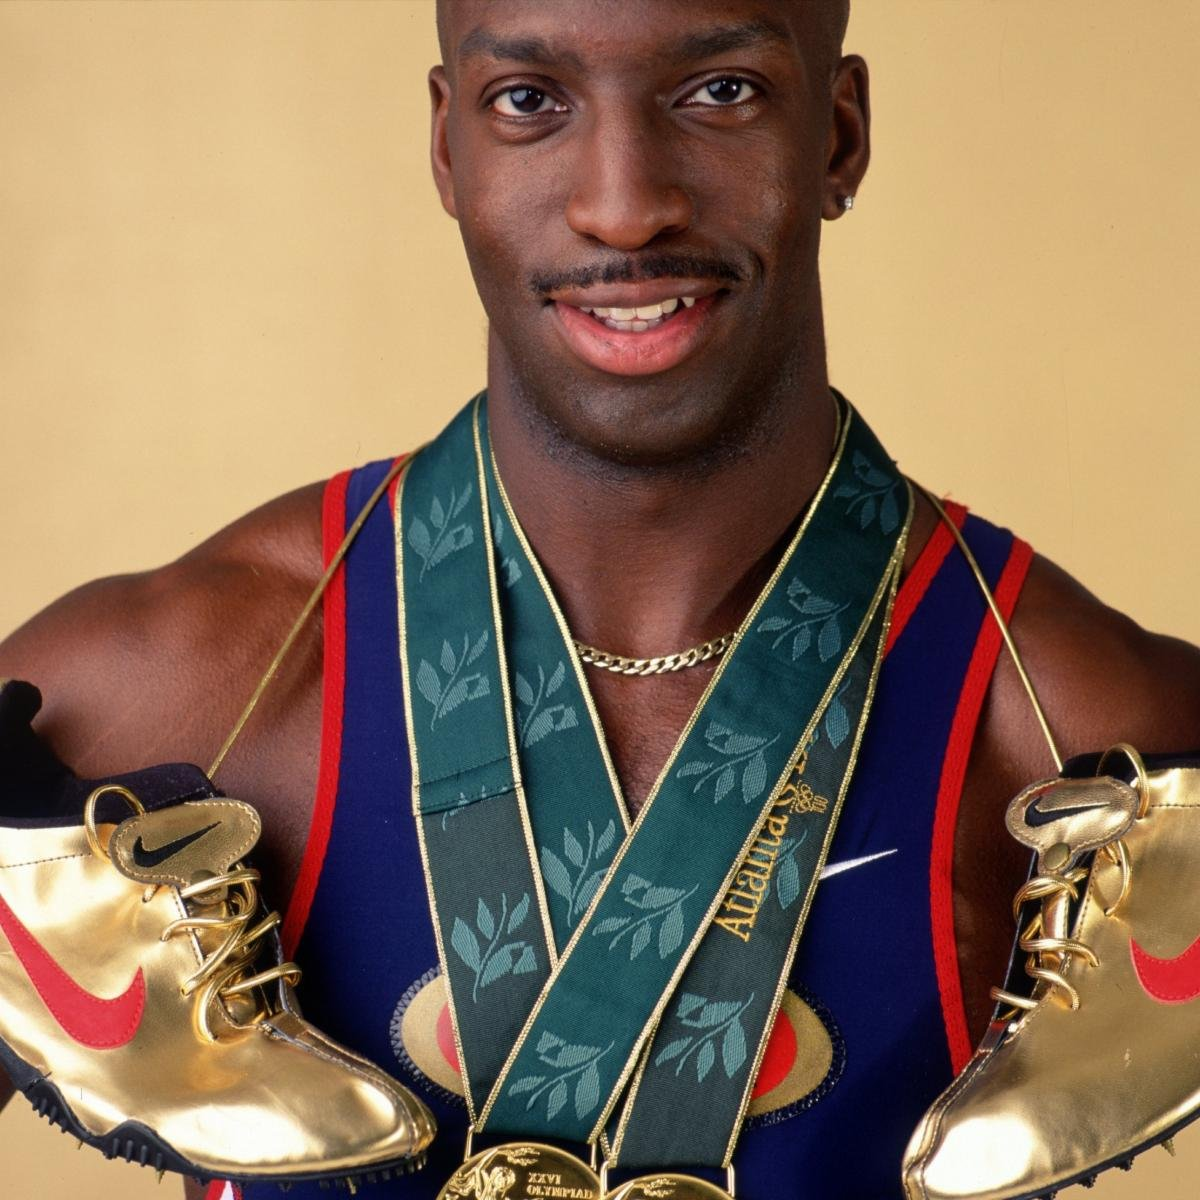 Michael Johnson and the Night the Shoes Went Golden